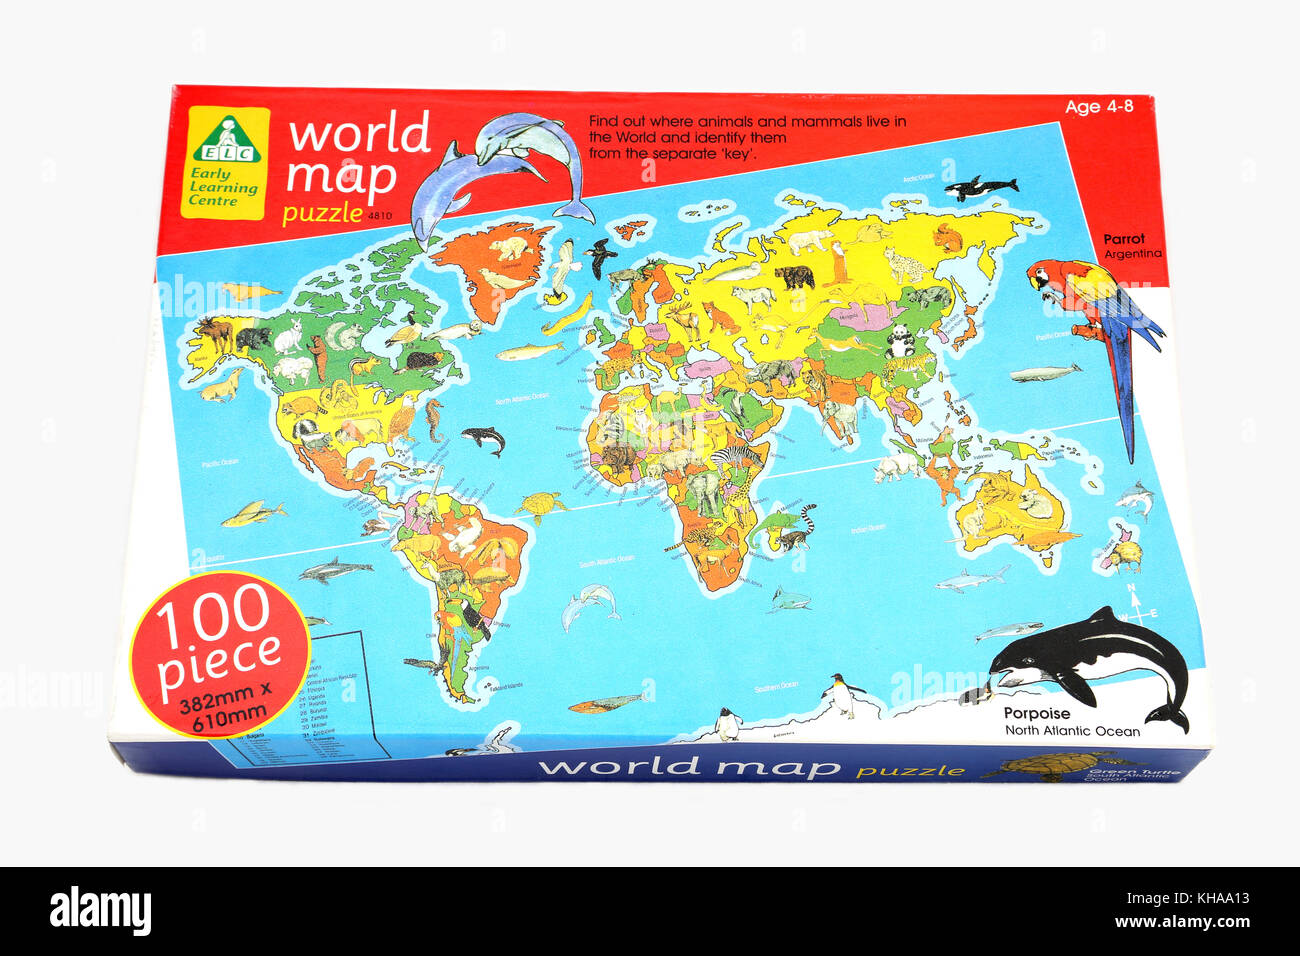 early learning centre world map jigsaw puzzle stock image